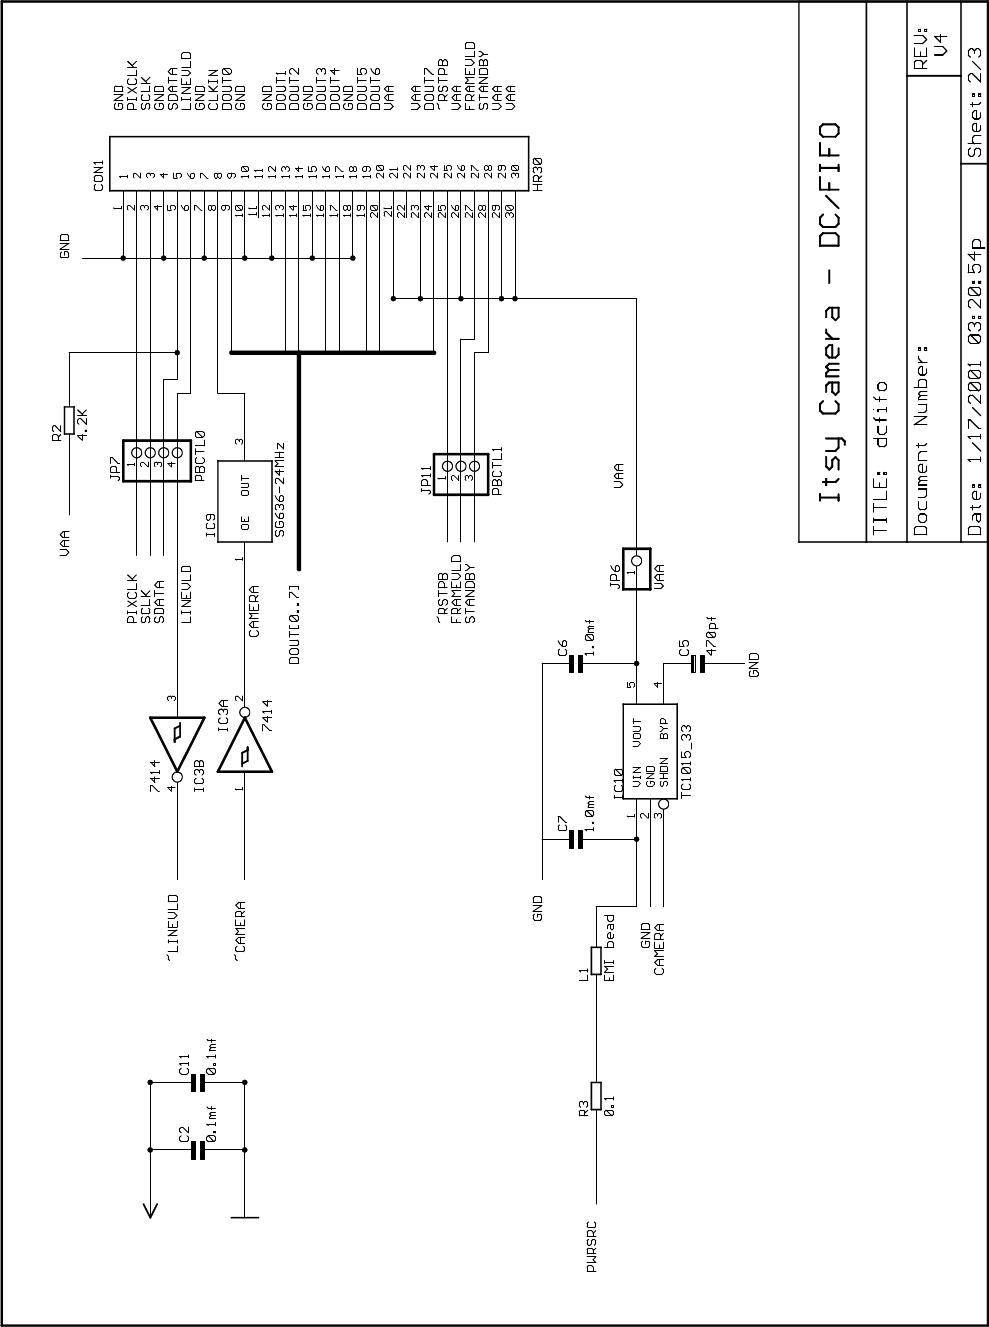 A Simple Cmos Camera For Itsy Wrl Tn 58 7414 Inverter Oscillator Circuit Technical Note